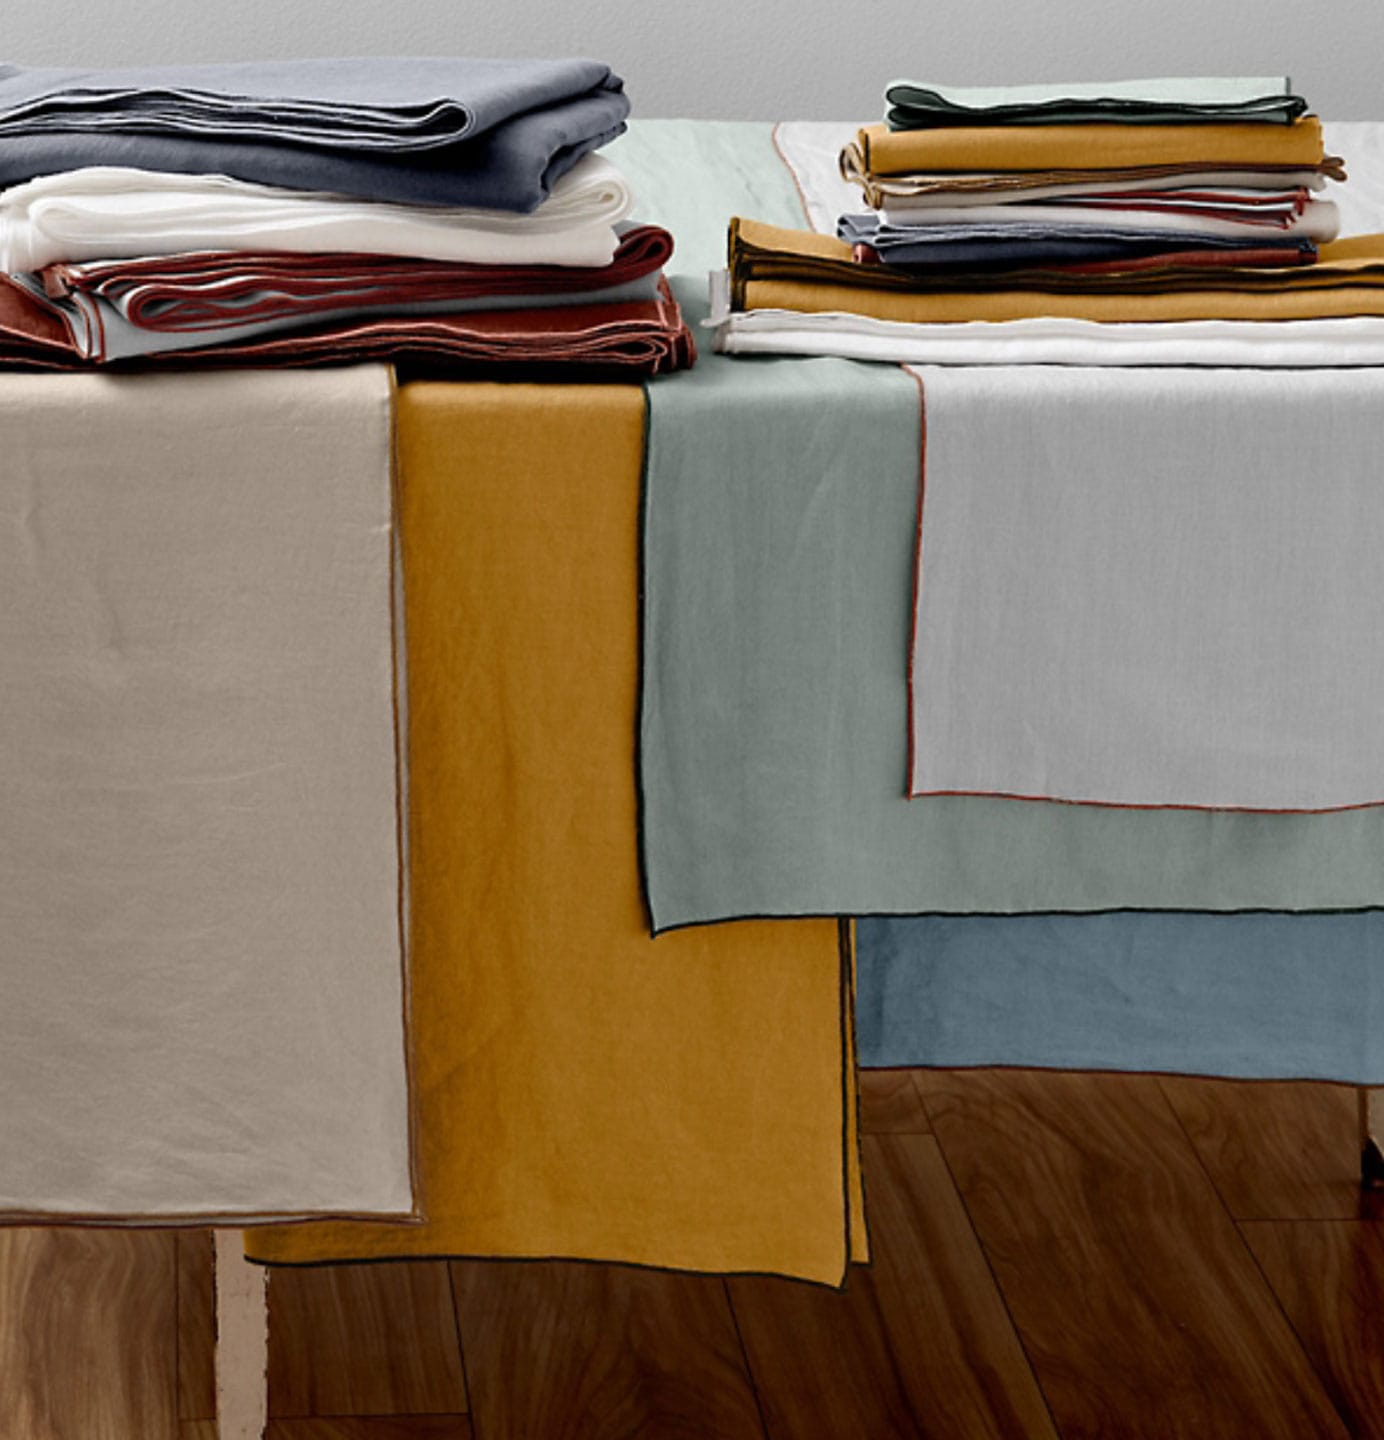 Lifestyle Blogger Annie Diamond shares ideas on how to use Garnet Hill's Relaxed-Linen tablecloths and napkins. #linen #garnethill #linennapkins #linentablecloths